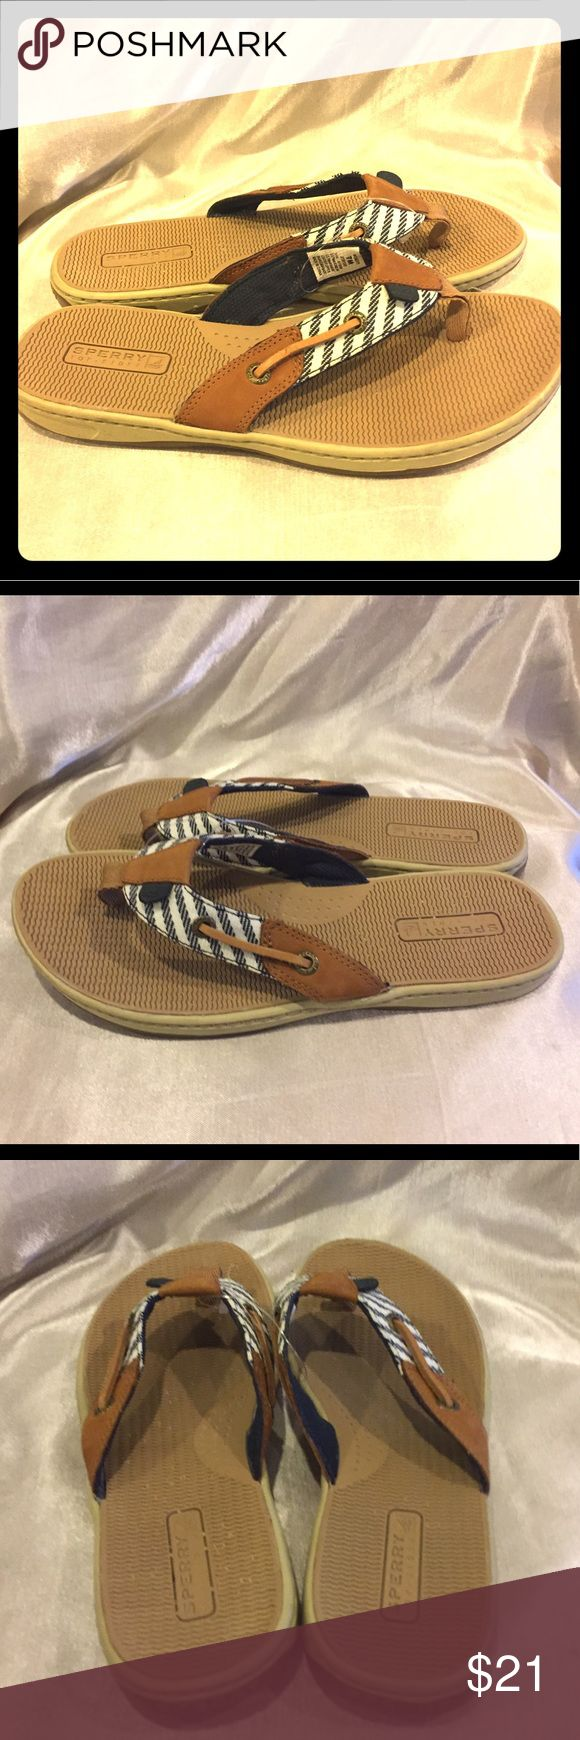 Sperry  Blue and White striped flip flops things 7 Sperry Top sider blue striped leather Thong Flip Flops Size 7 EUC see pictures Sperry Top-Sider Shoes Sandals